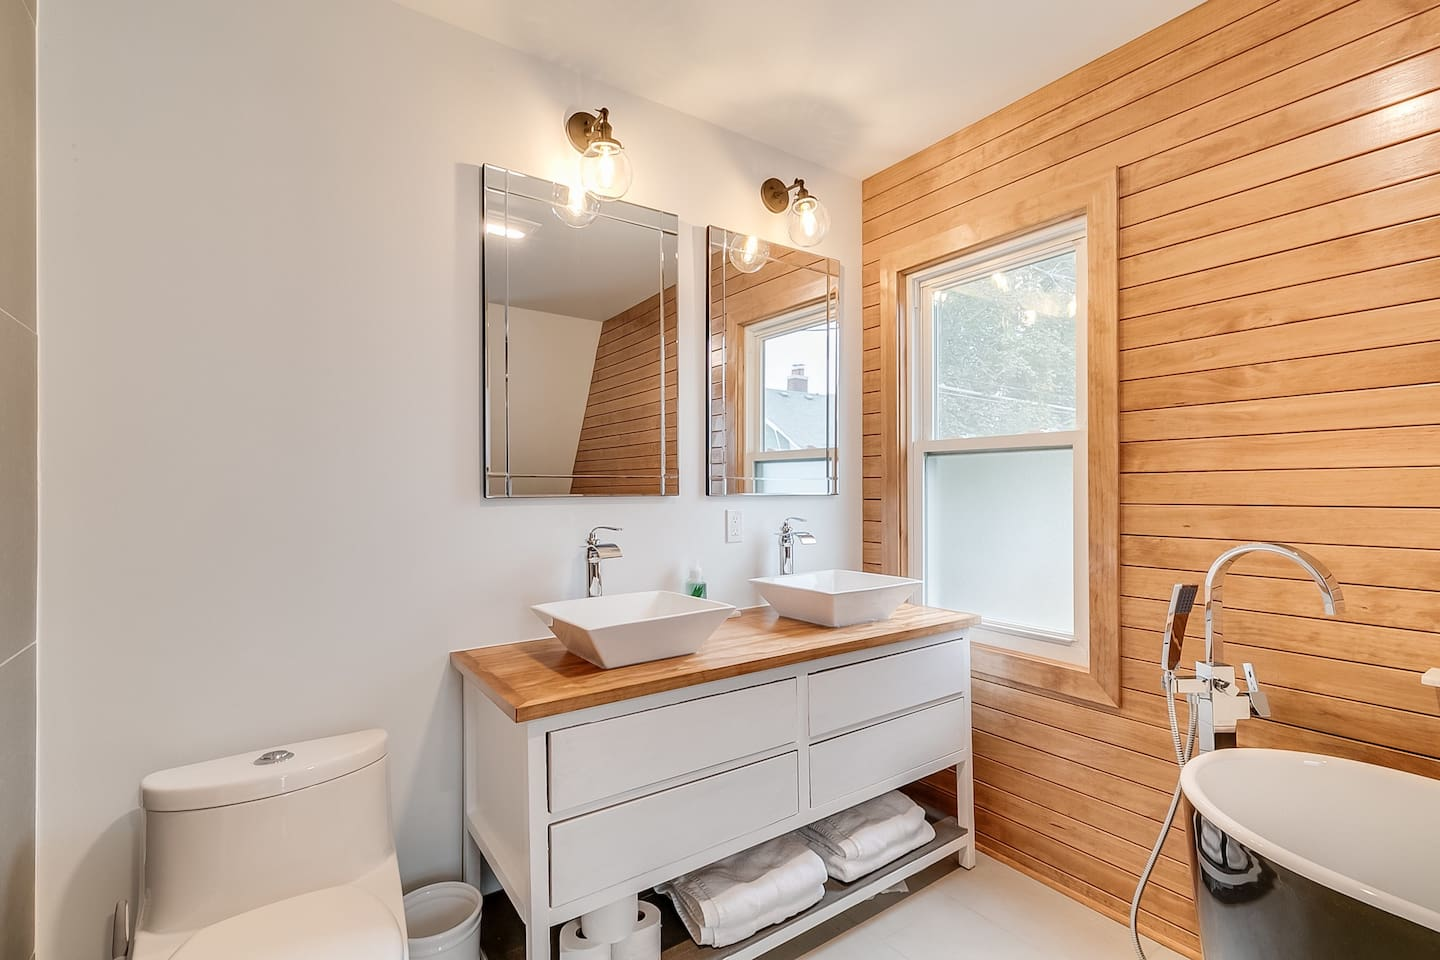 Simple, clean, and modern with a little spa on the side. (Located on the second floor.)